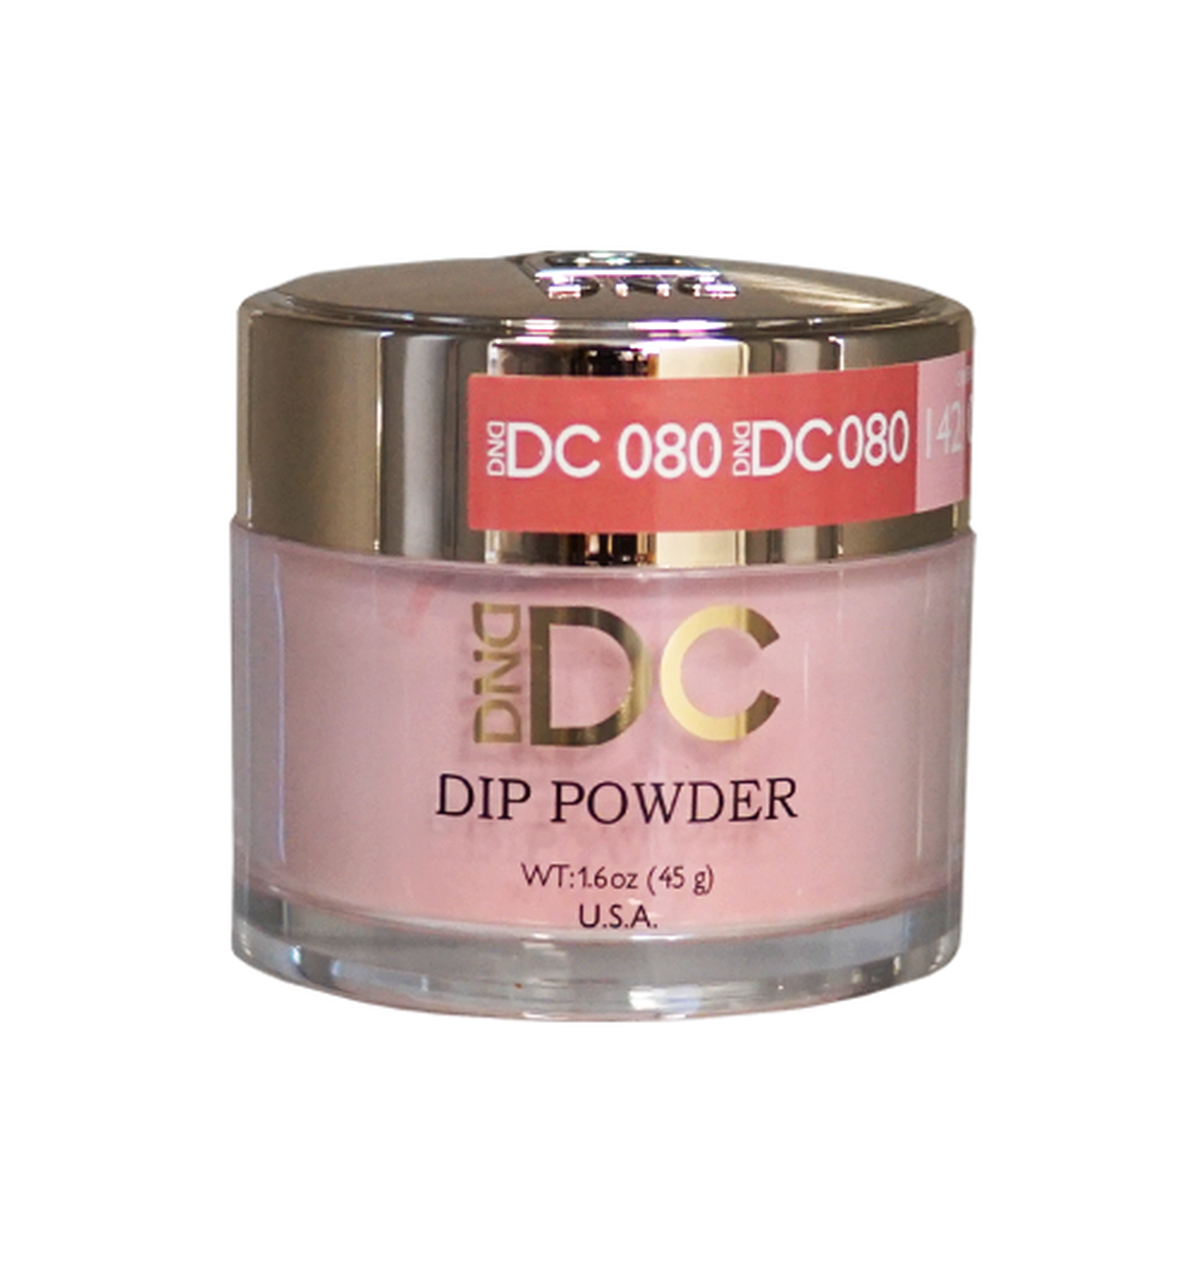 Buy Dnd Dc Dip Powder Dc080 Lobster Bisque Diamond Nail Supplies